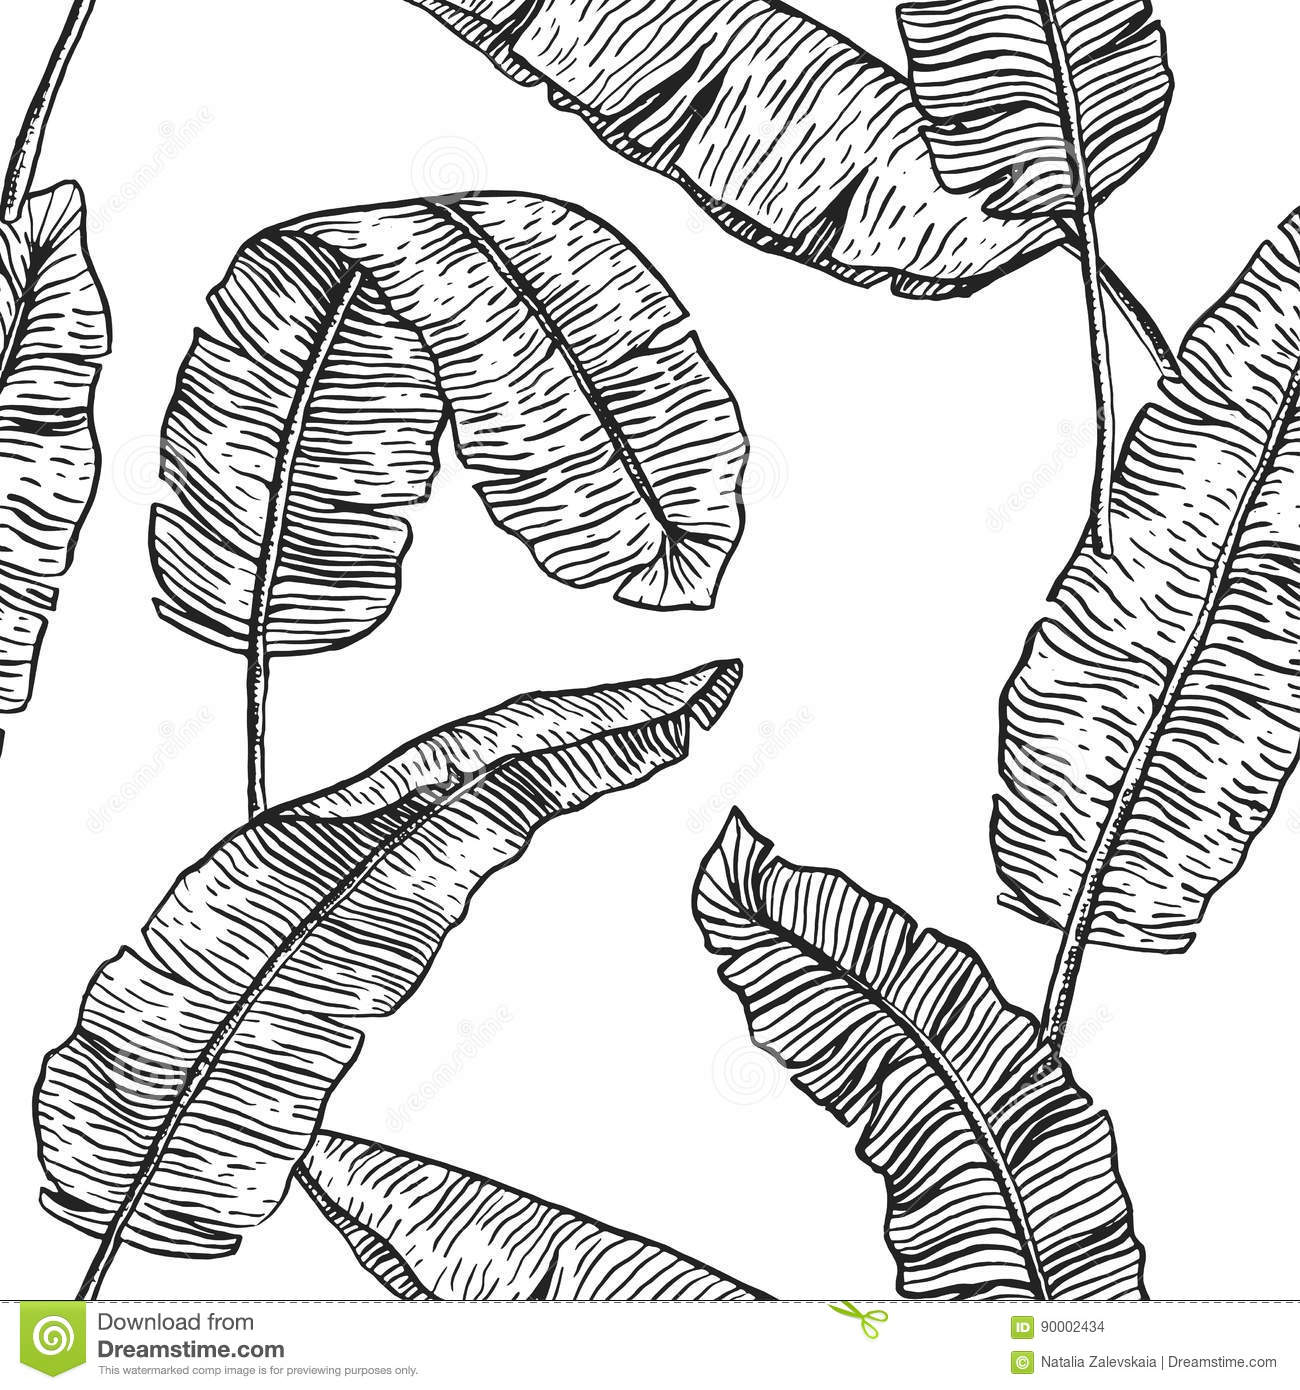 Banana leaves tropical seamless pattern monochrome line repeated background with palm leaves